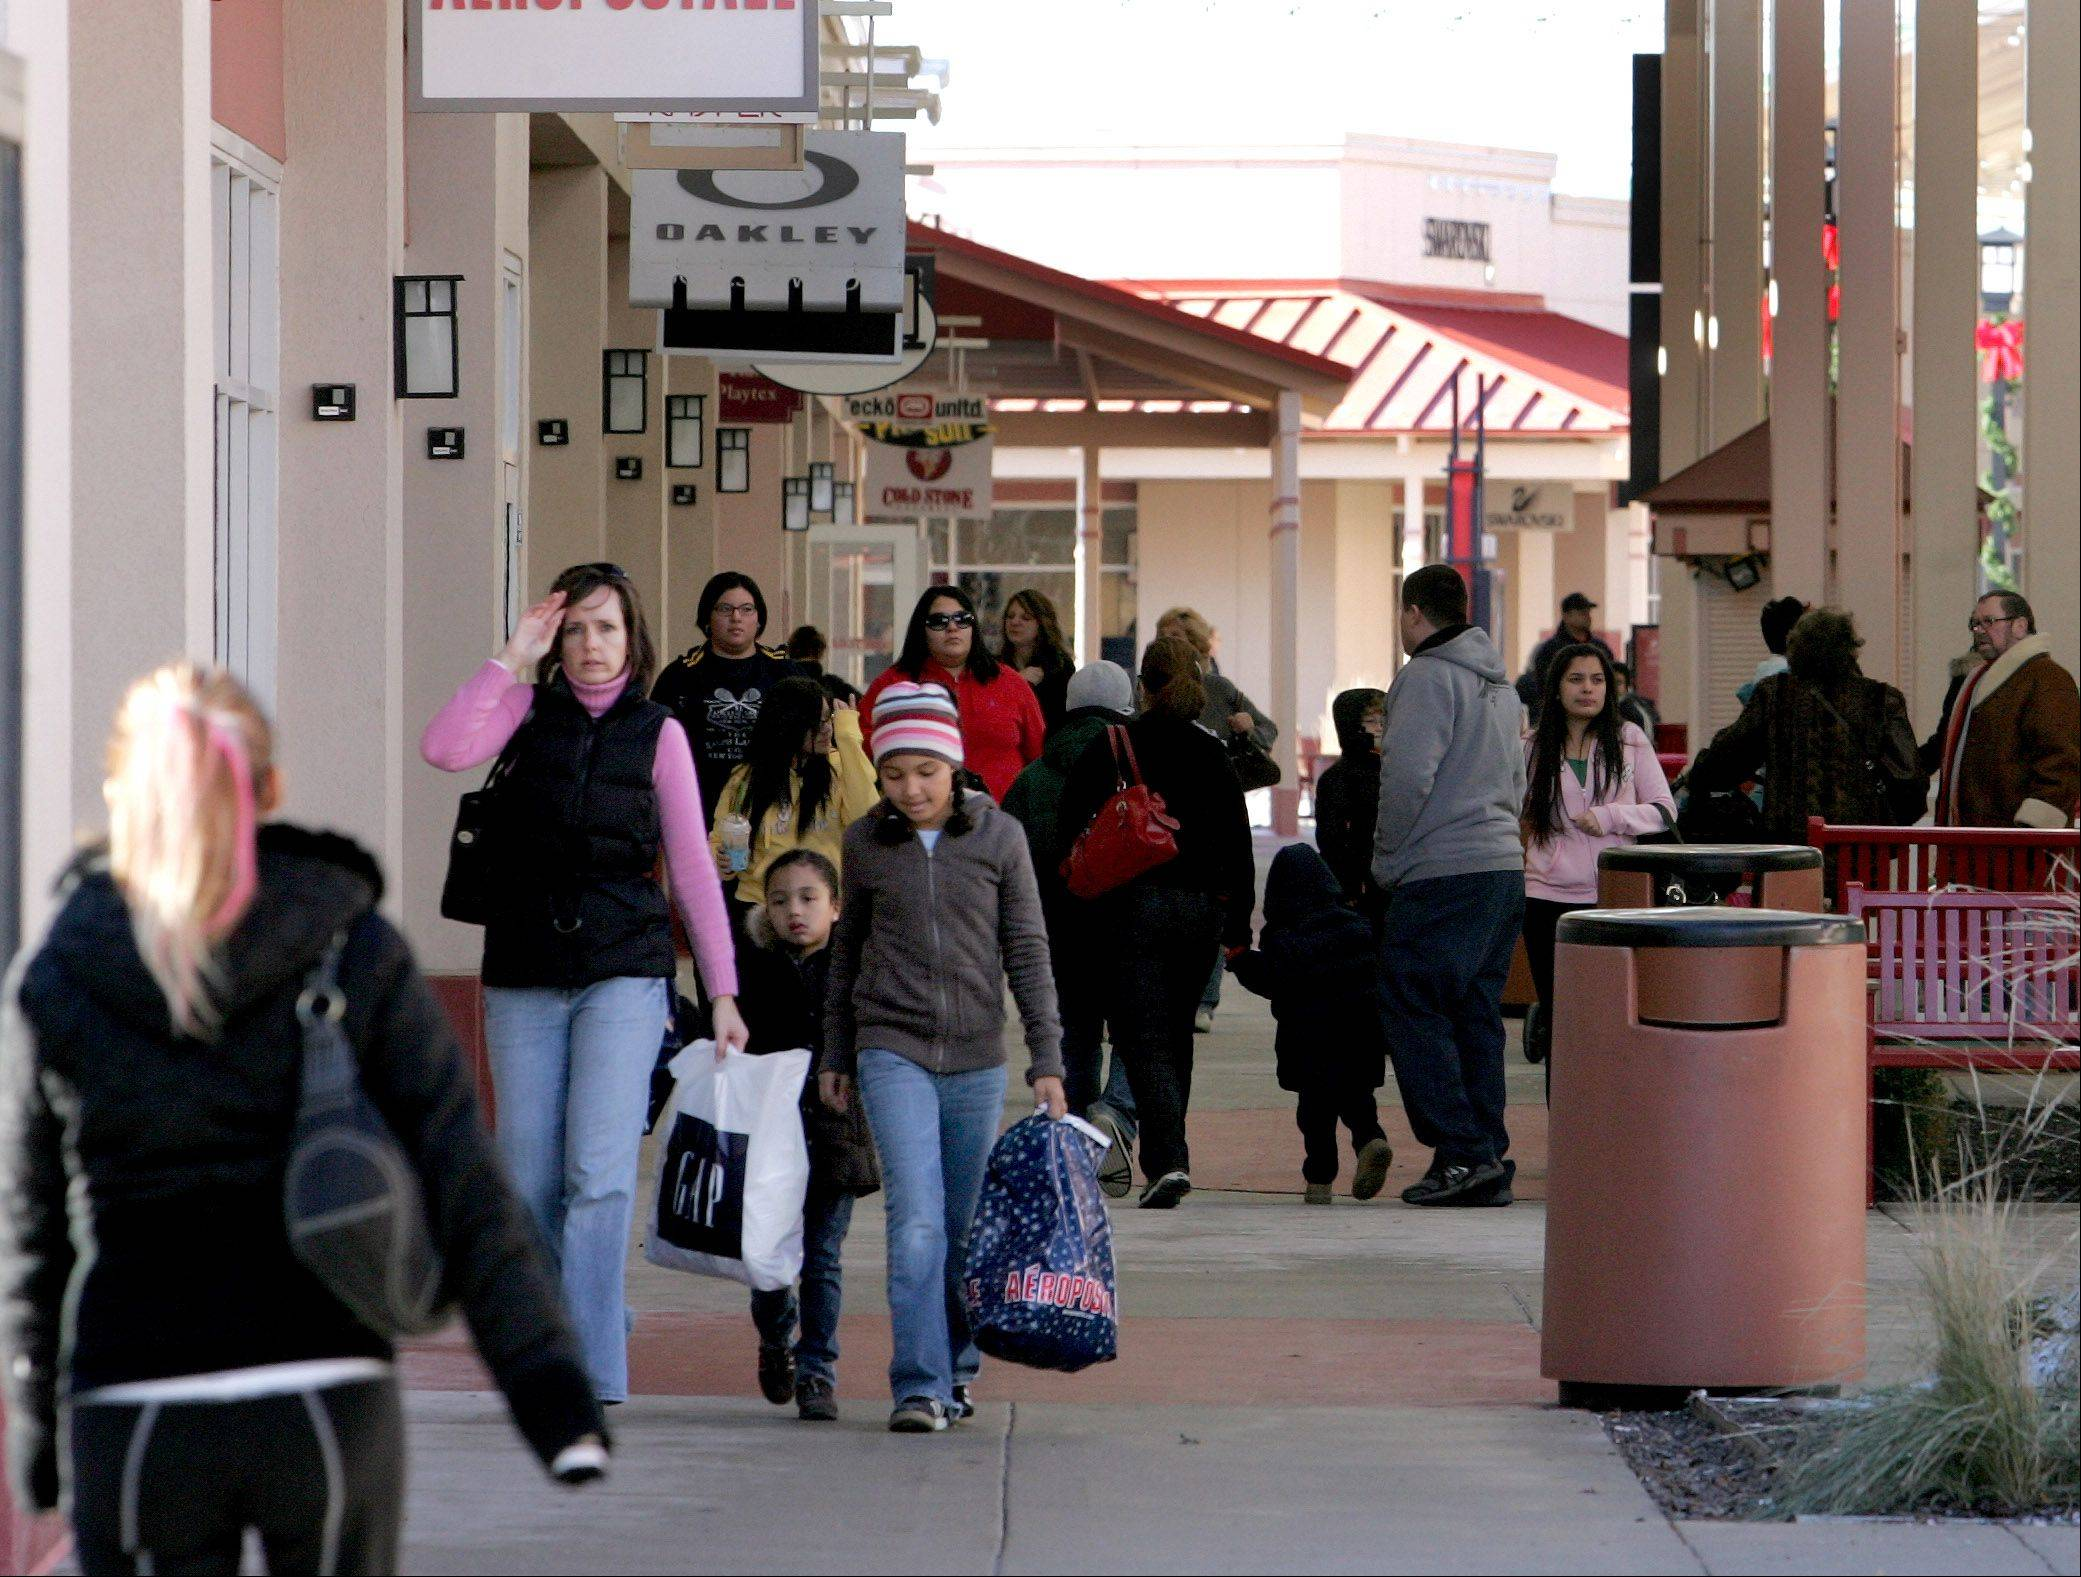 Major expansion in store for Aurora outlet mall